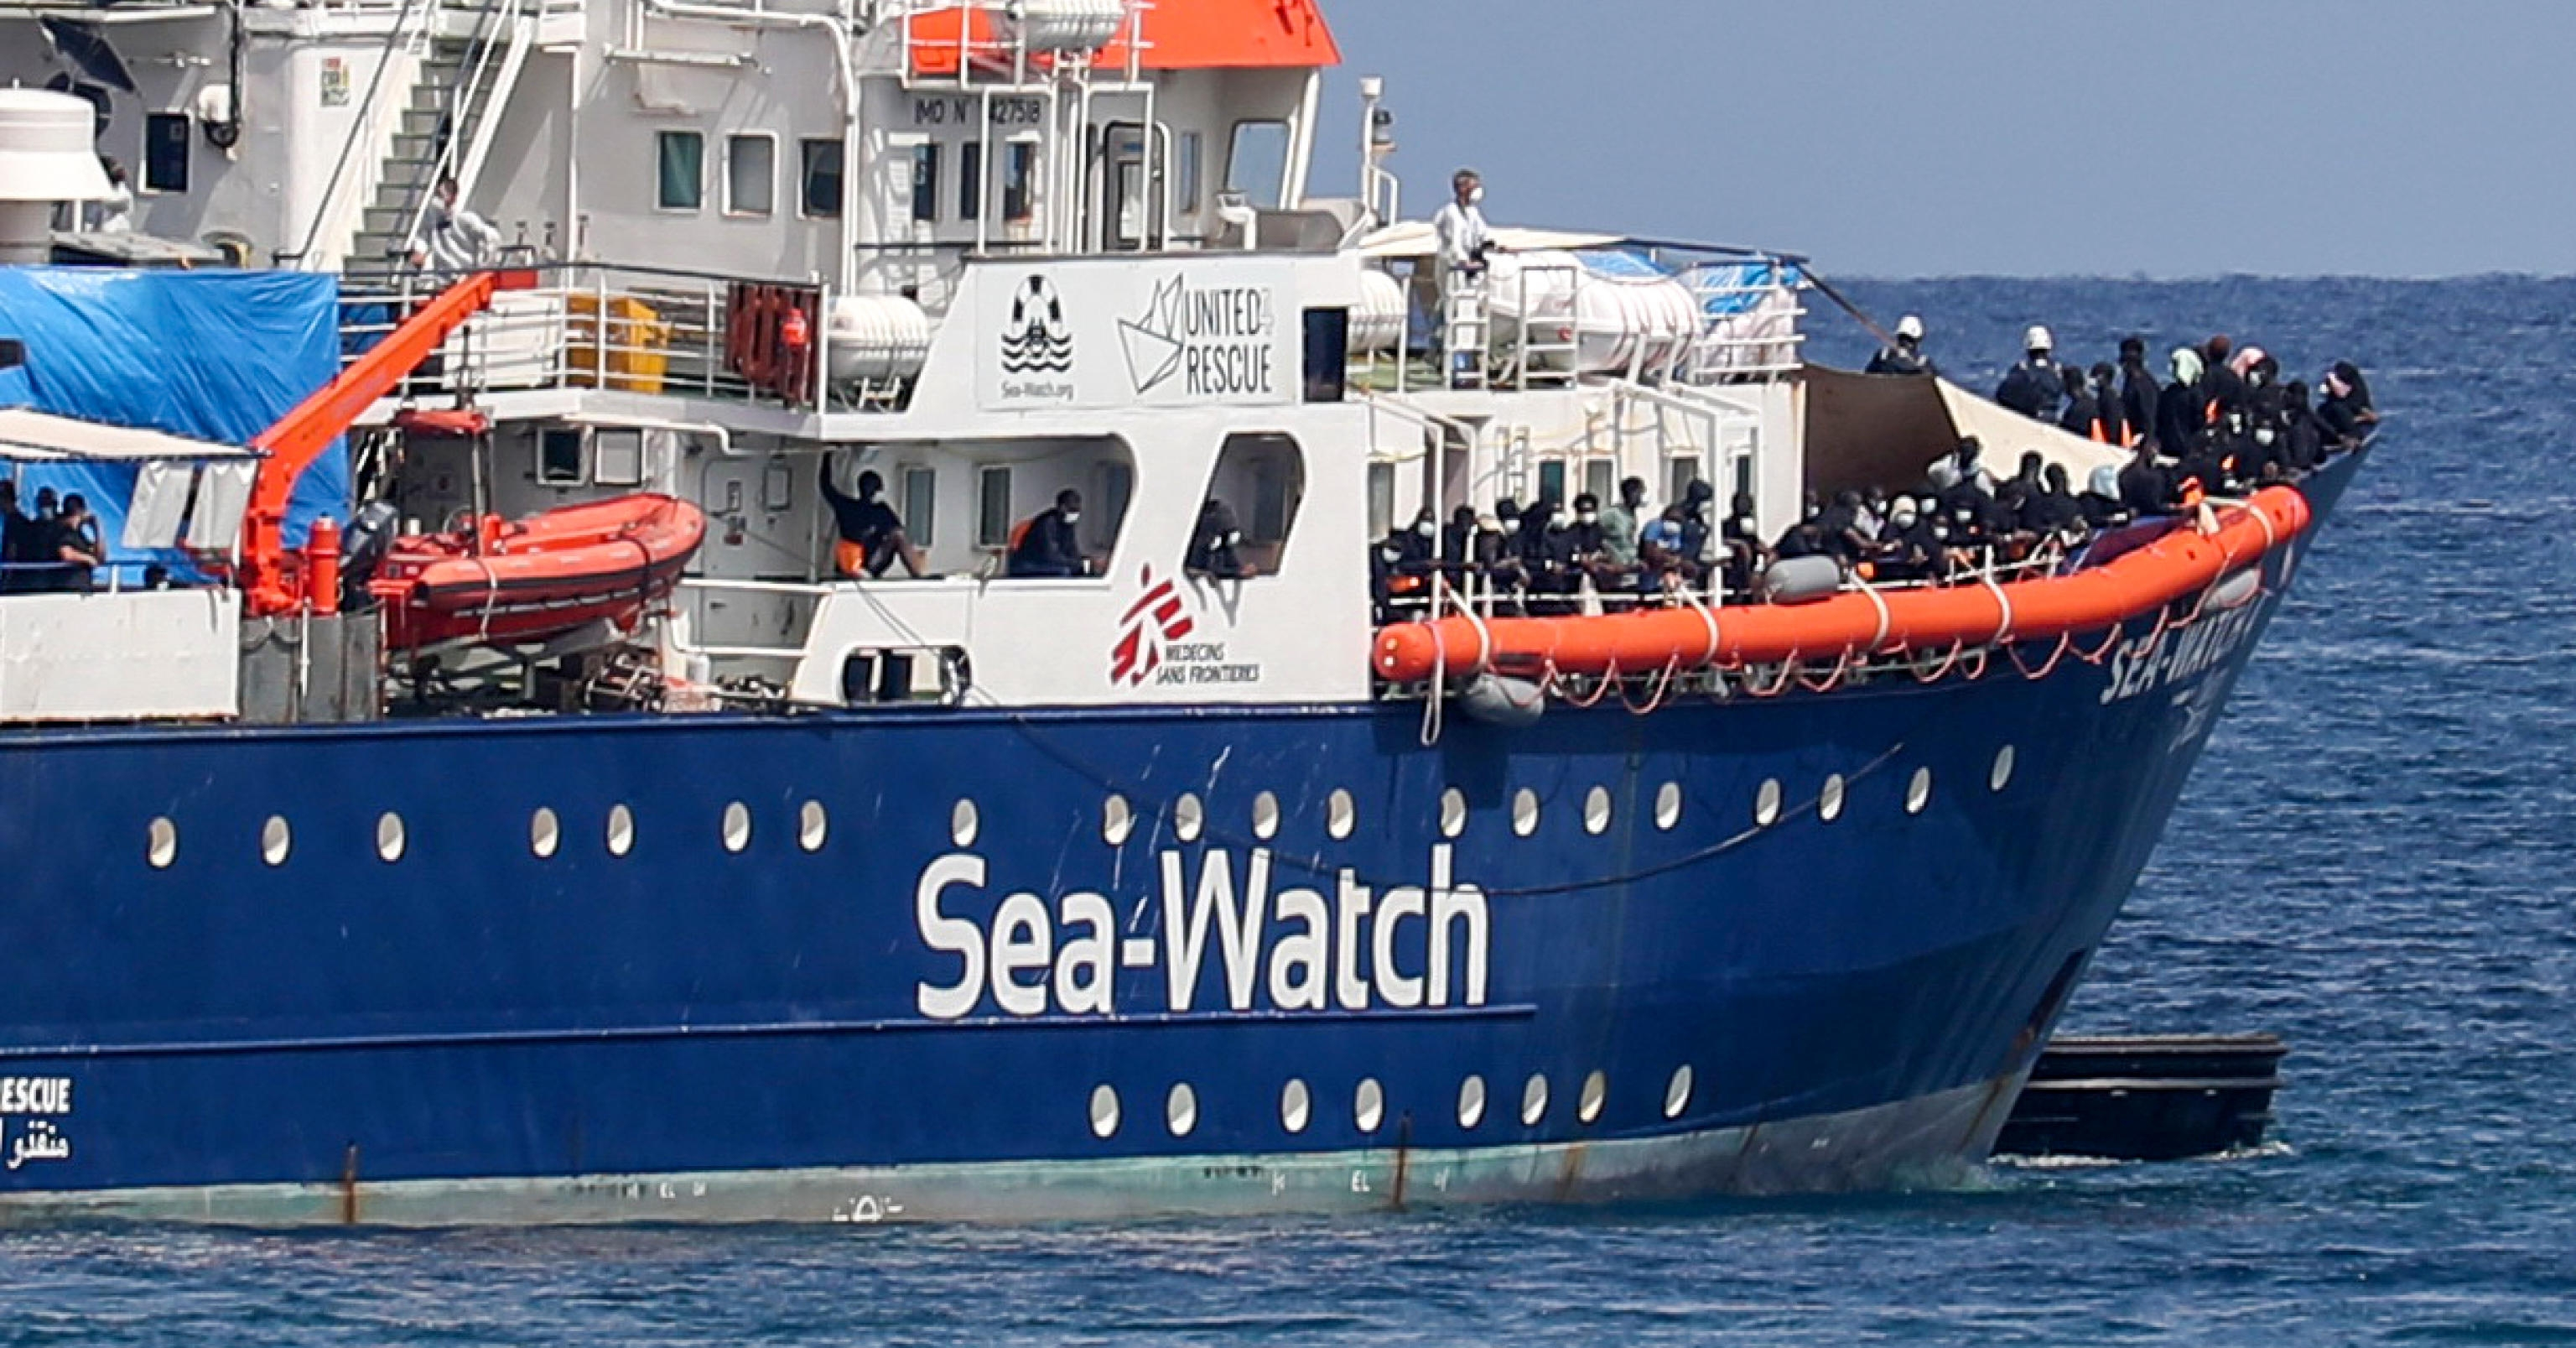 Fermo amministrativo per la Sea Watch 4